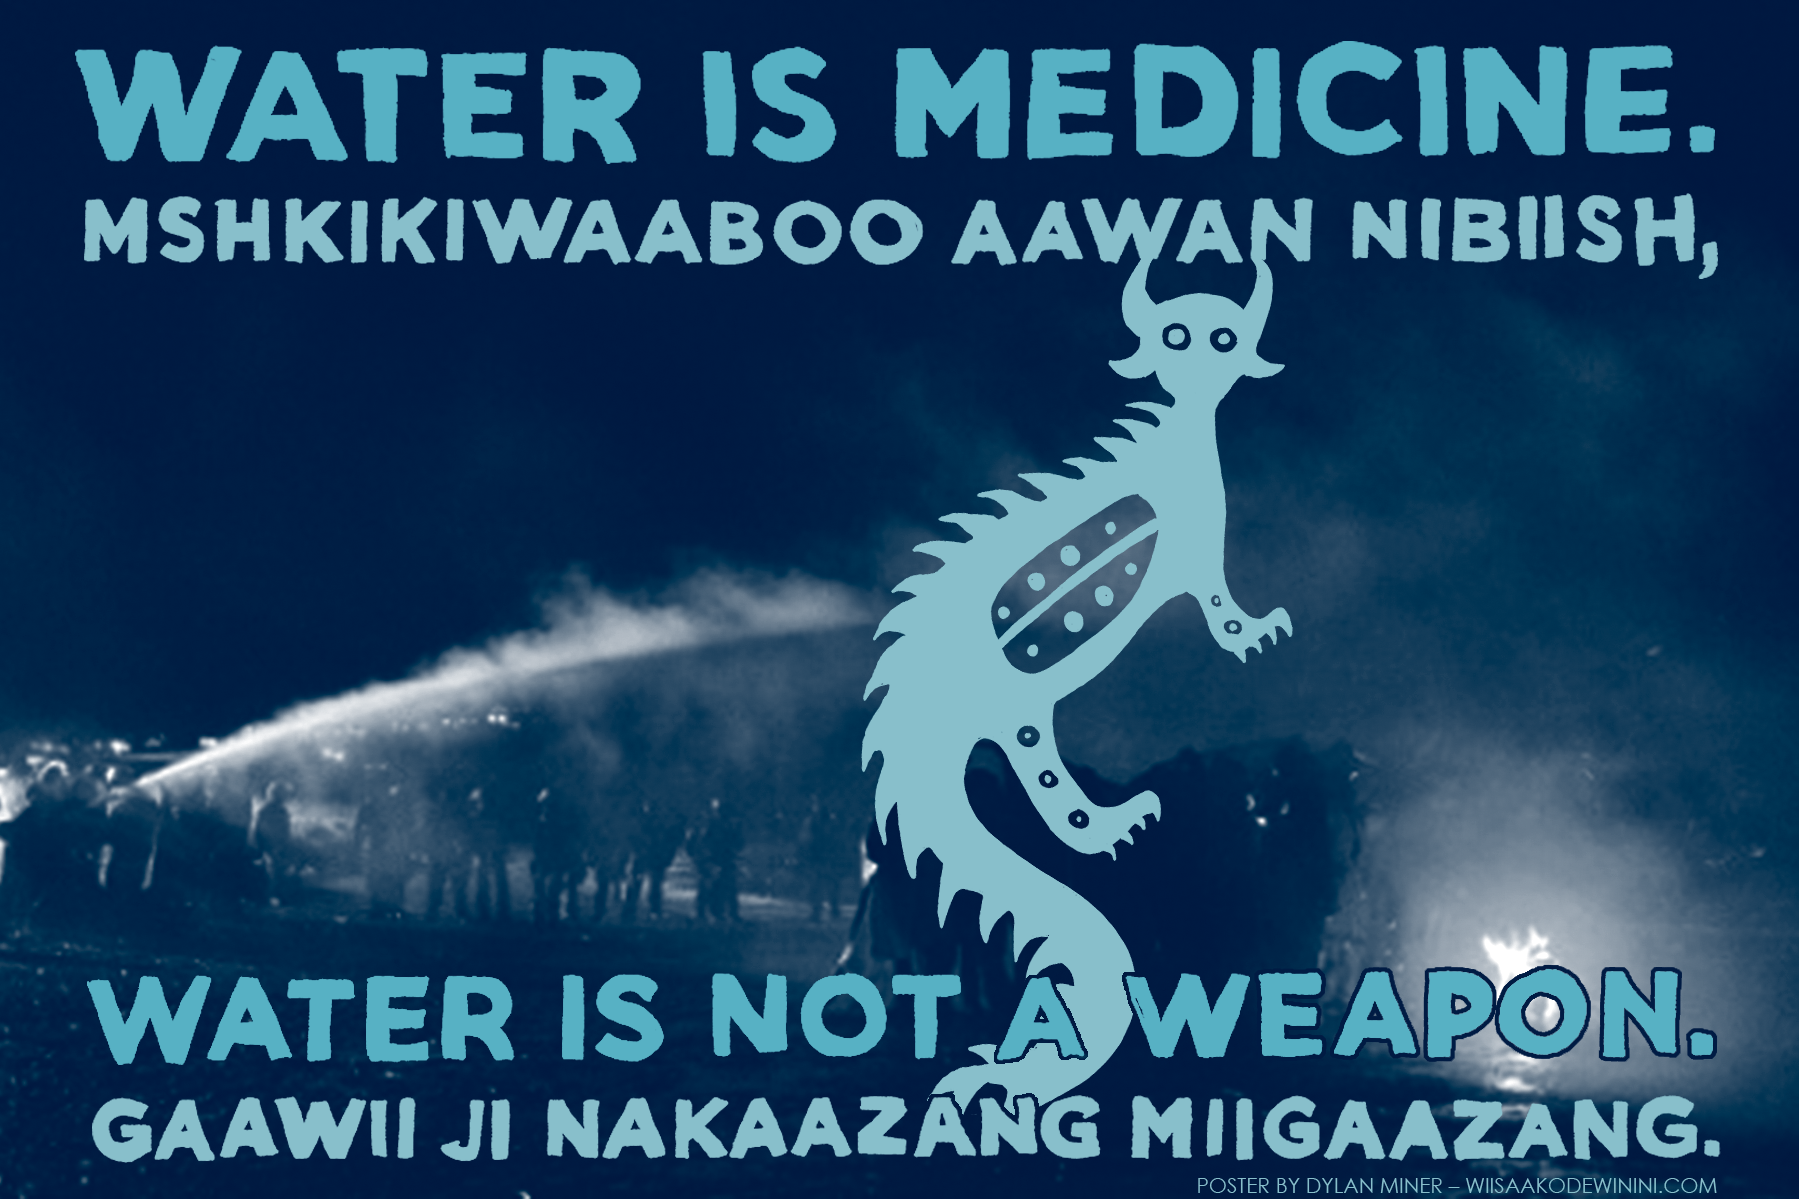 23a_dylan-miner_-water-is-medicine-water-is-not-a-weapon-of-state-violence